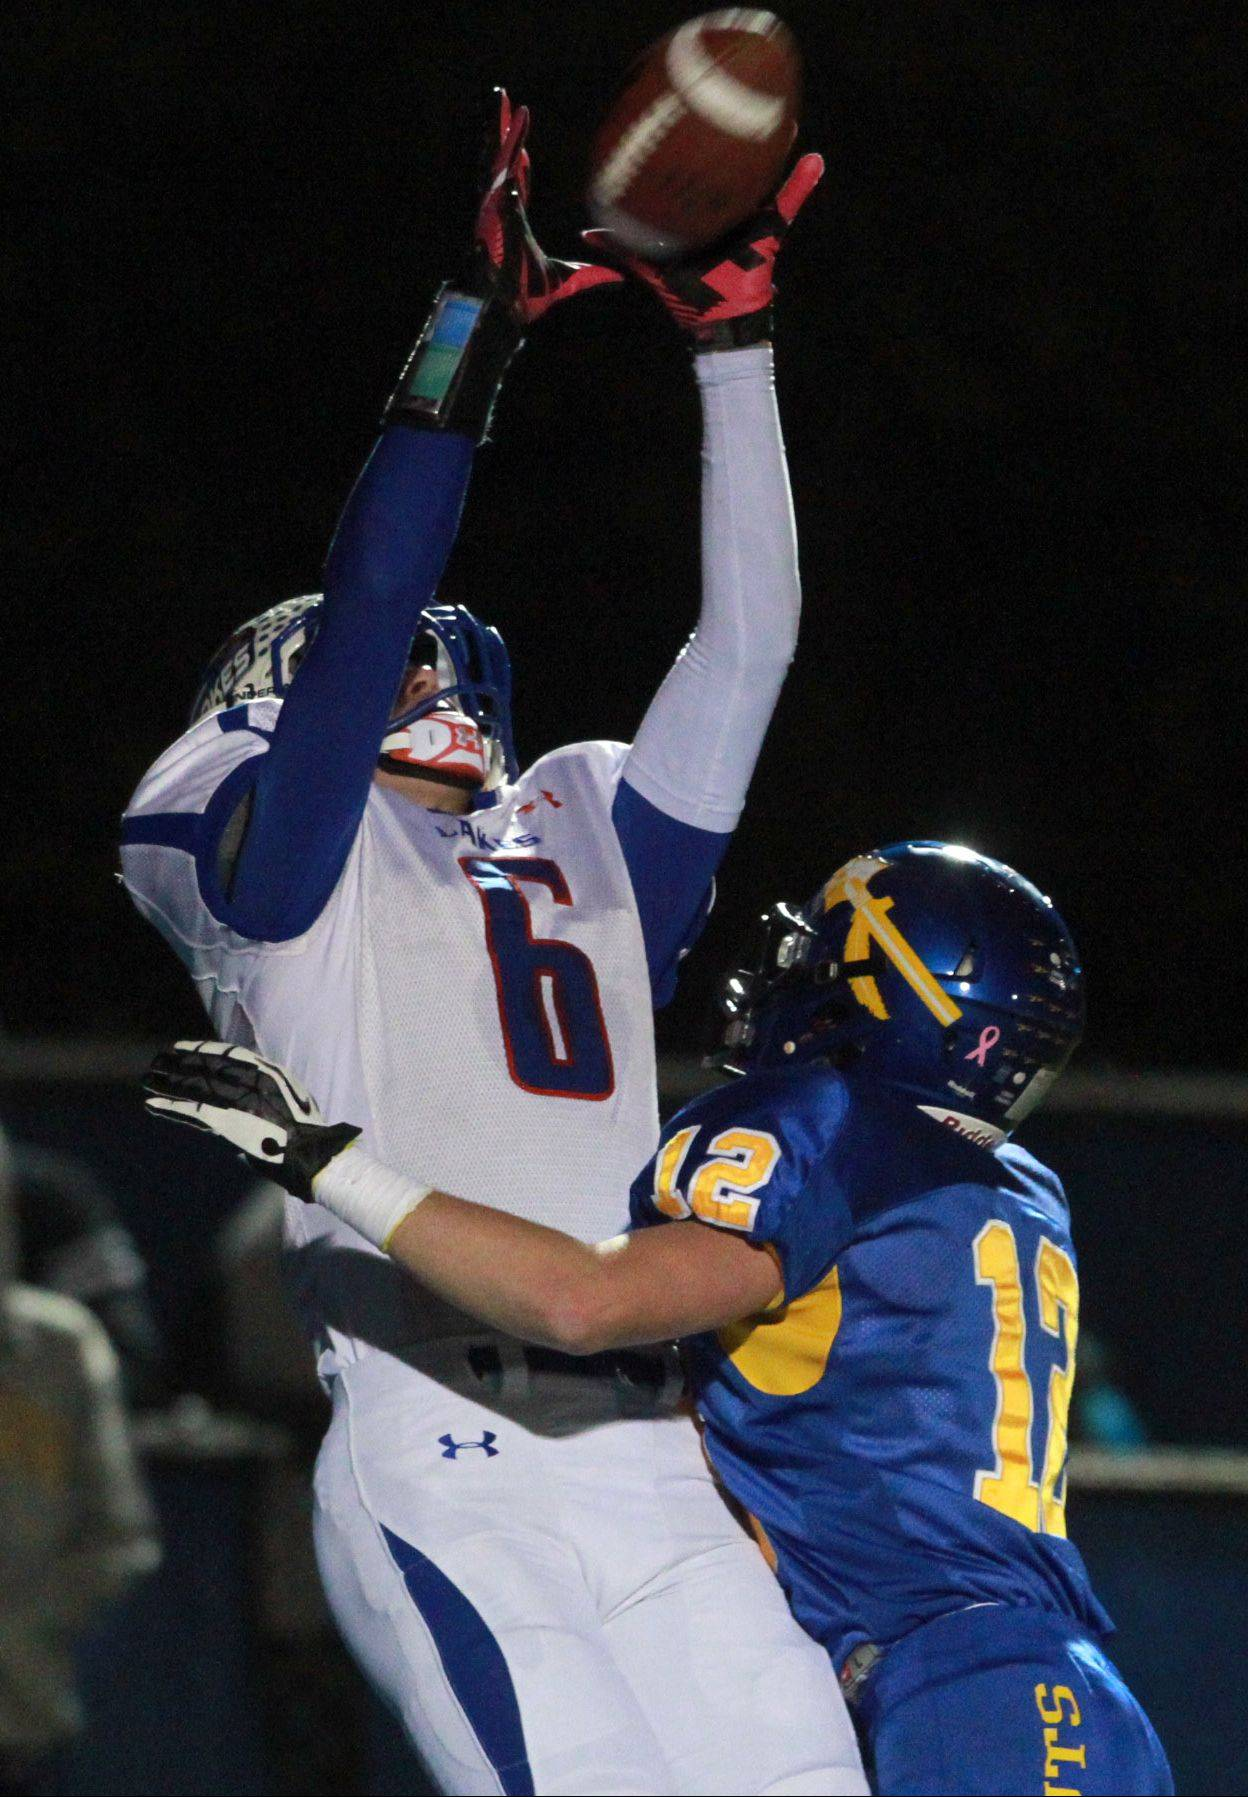 Lakes' Justin Bergeron pulls in a first-quarter touchdown pass above Lake Forest defender Alexander Moore in round two of Class 6A playoffs Friday in Lake Forest.